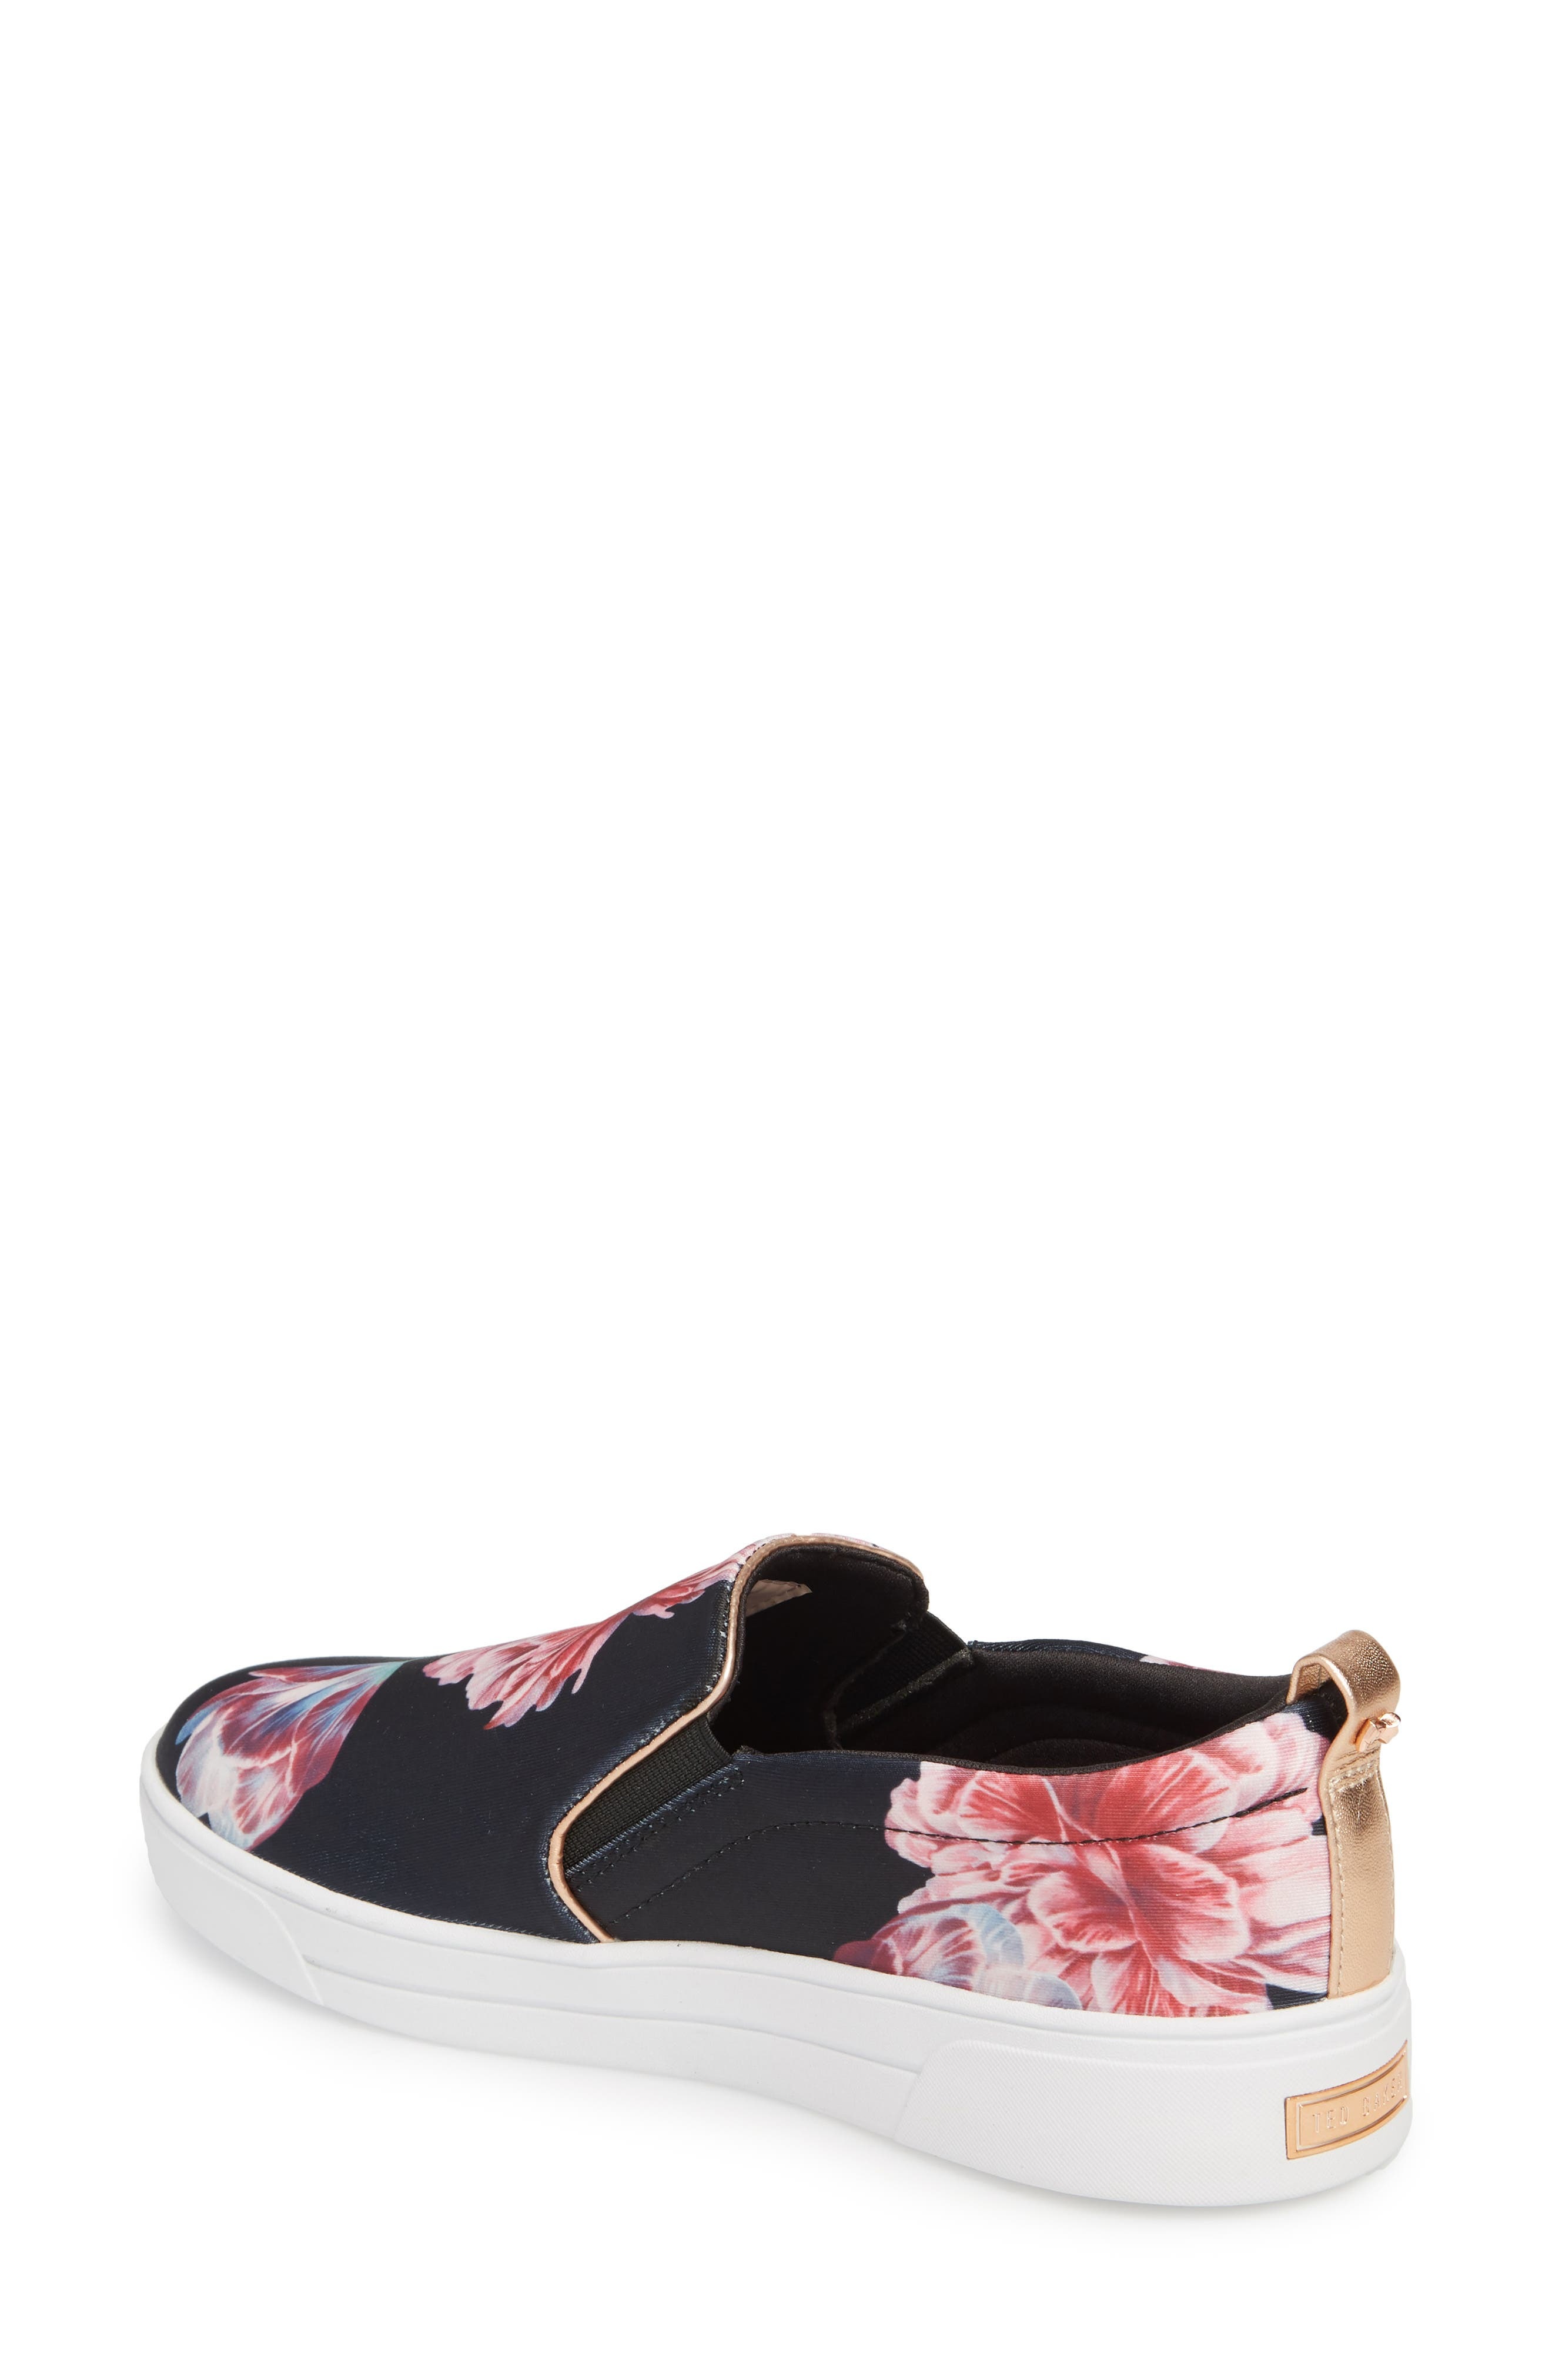 Tancey Slip-On Sneaker,                             Alternate thumbnail 2, color,                             Black Tranquility Fabric